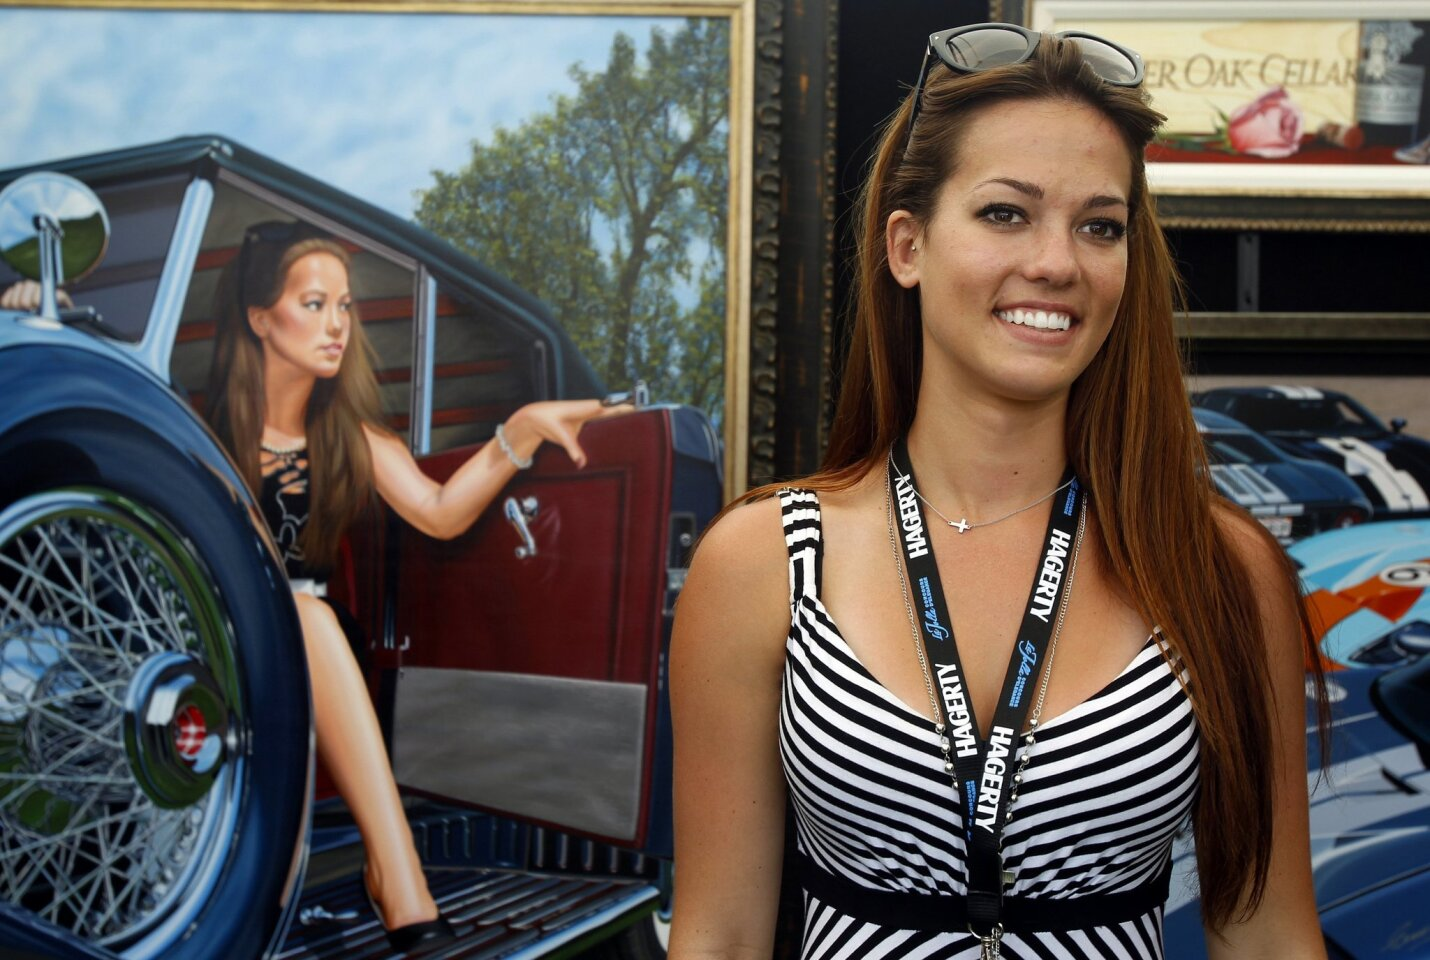 Model Alexa Jacobs was featured in the promotional image for the 9th Annual La Jolla Concours D'Elegance in La Jolla.